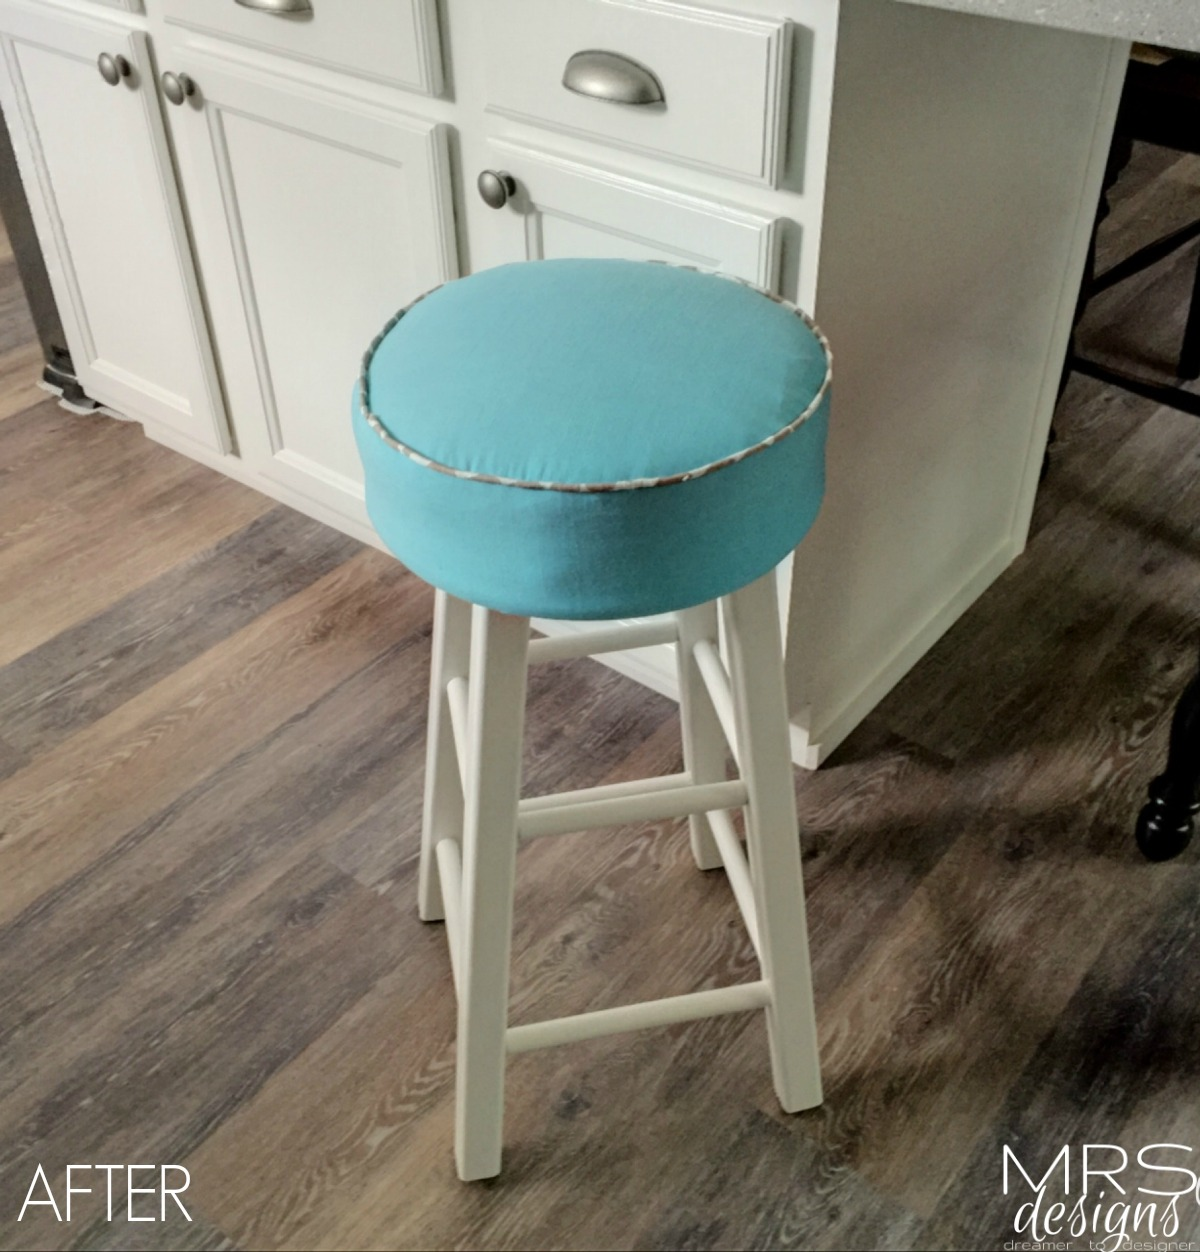 mrs-designs-stool-cushion-after.jpg